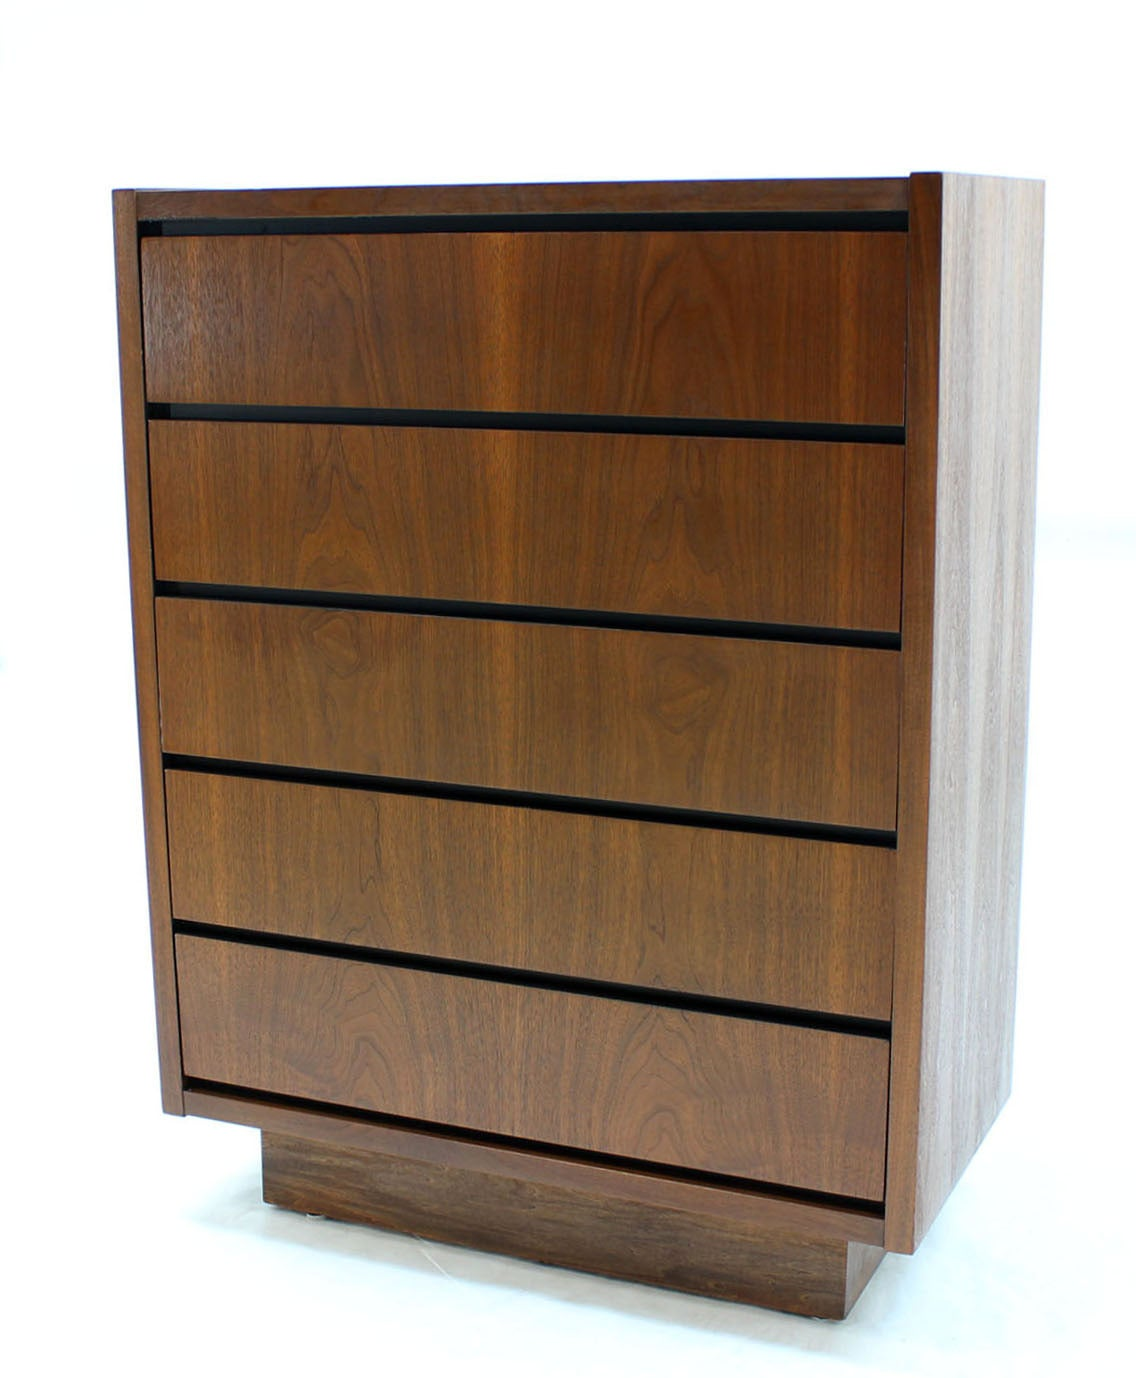 Mid century modern walnut high chest of drawers in mint condition. Beautiful book matched walnut veneer.